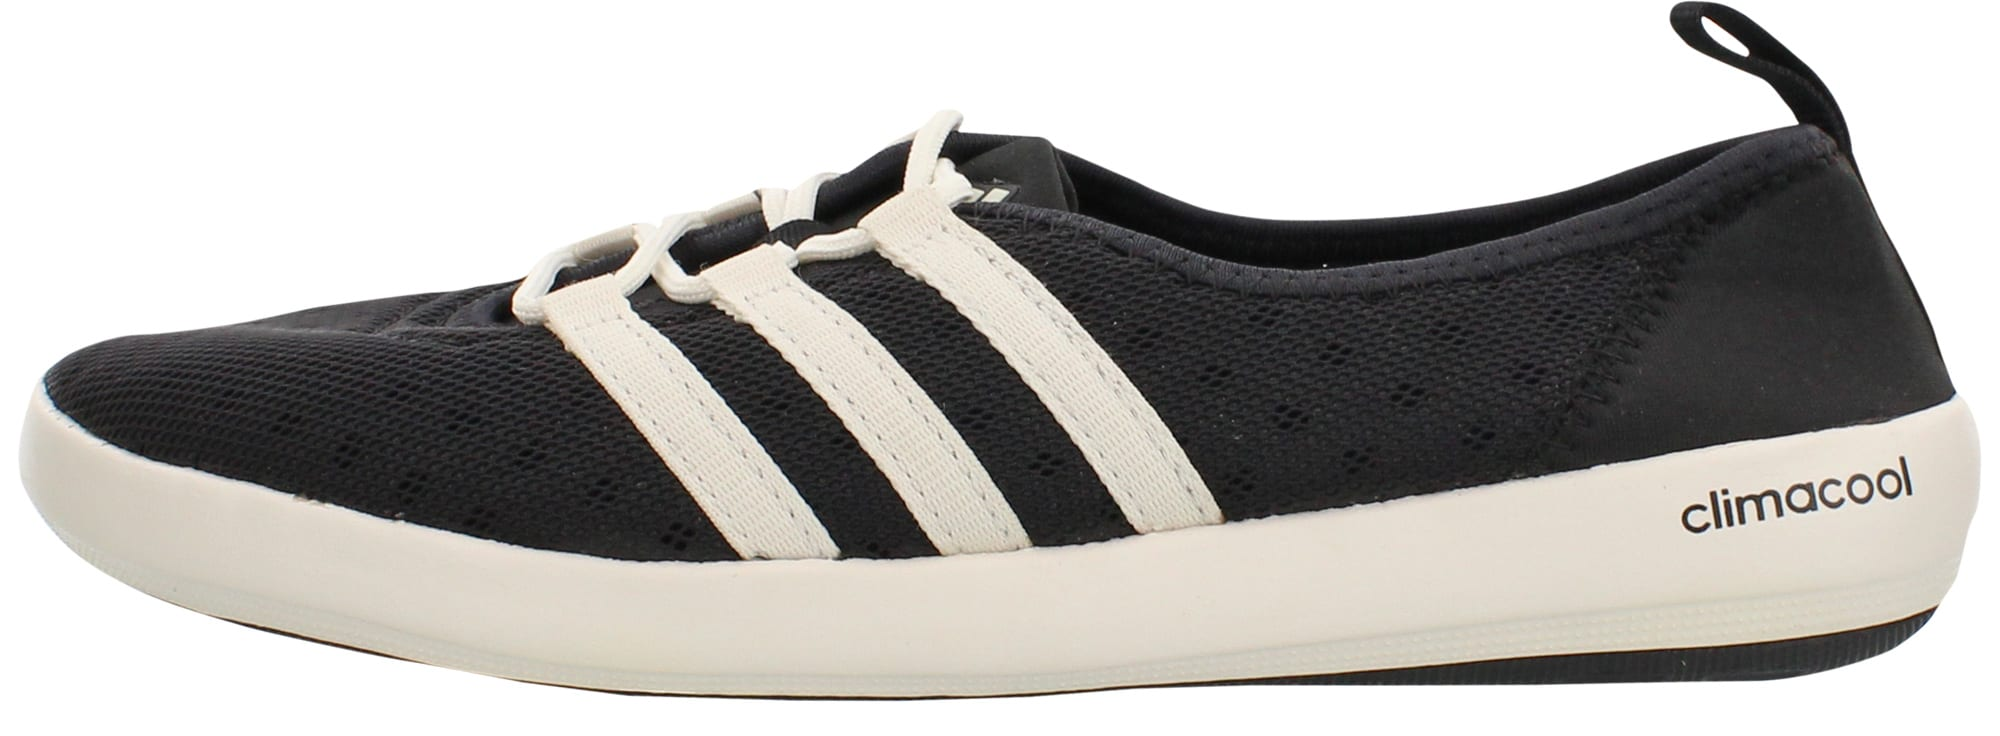 on sale 92b9a ce096 Adidas Climacool Boat Sleek Water Shoes - thumbnail 1